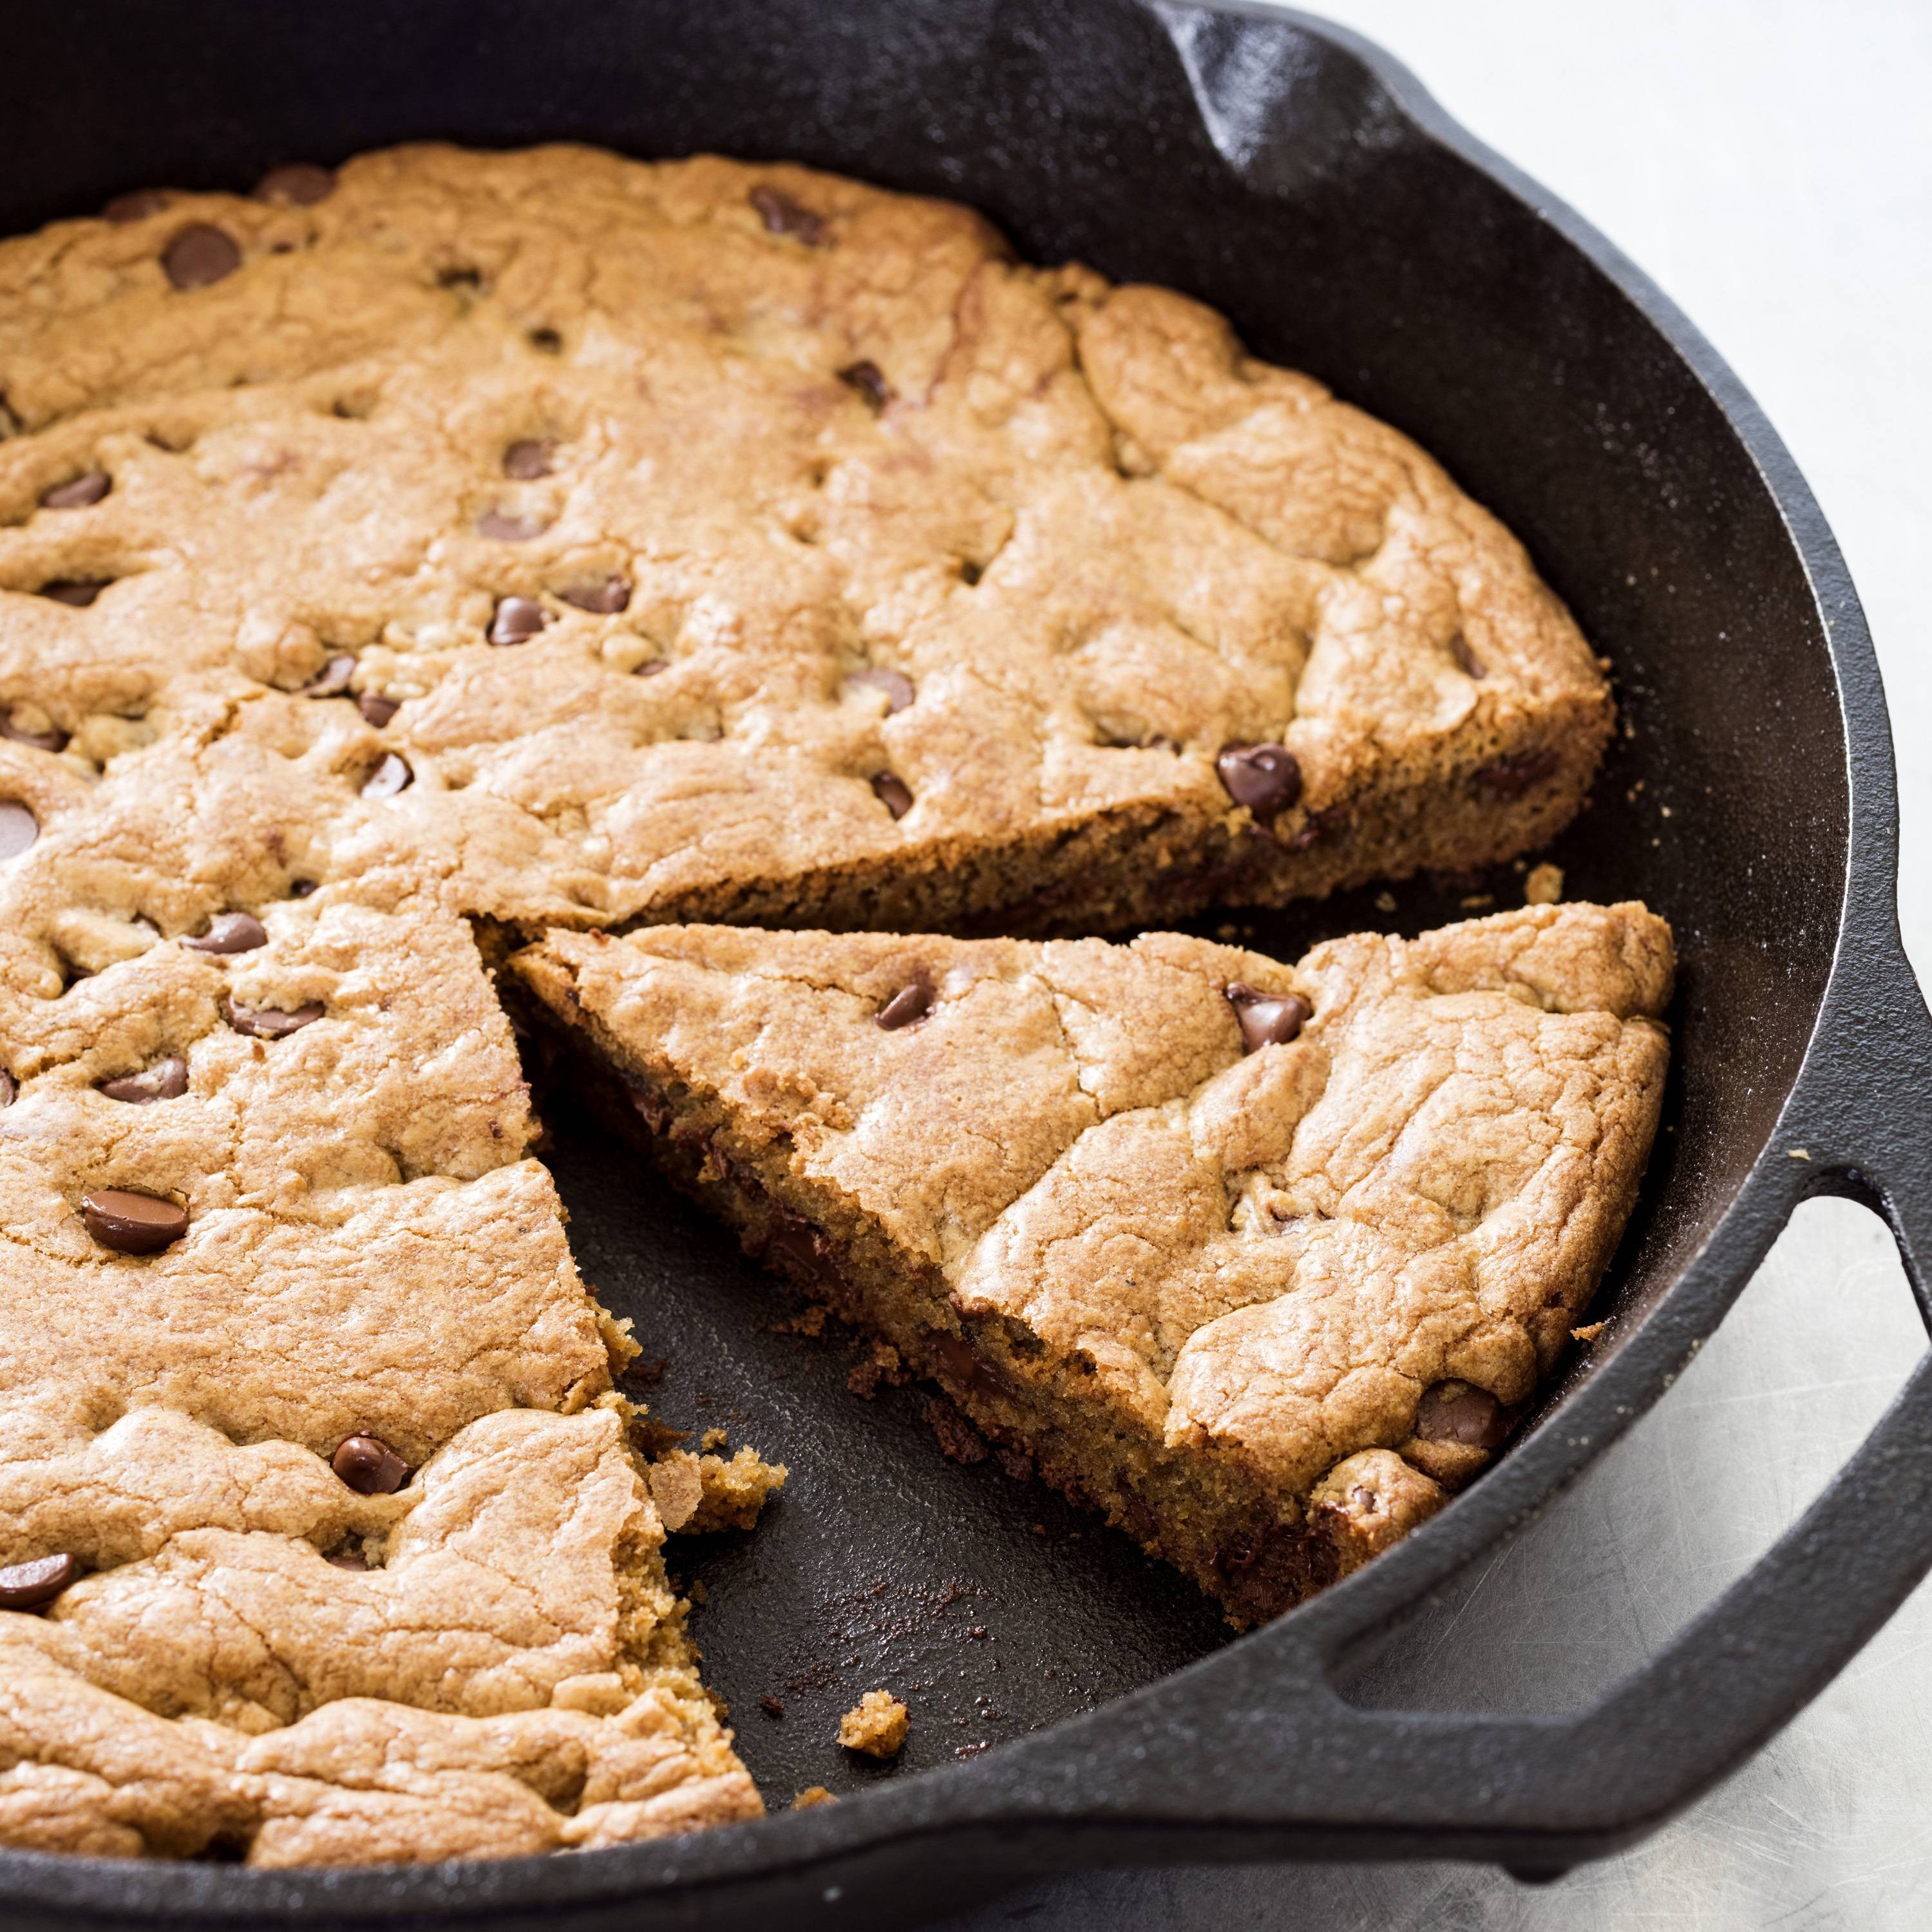 A cookie in a skillet? Sure, you're skeptical. But try it